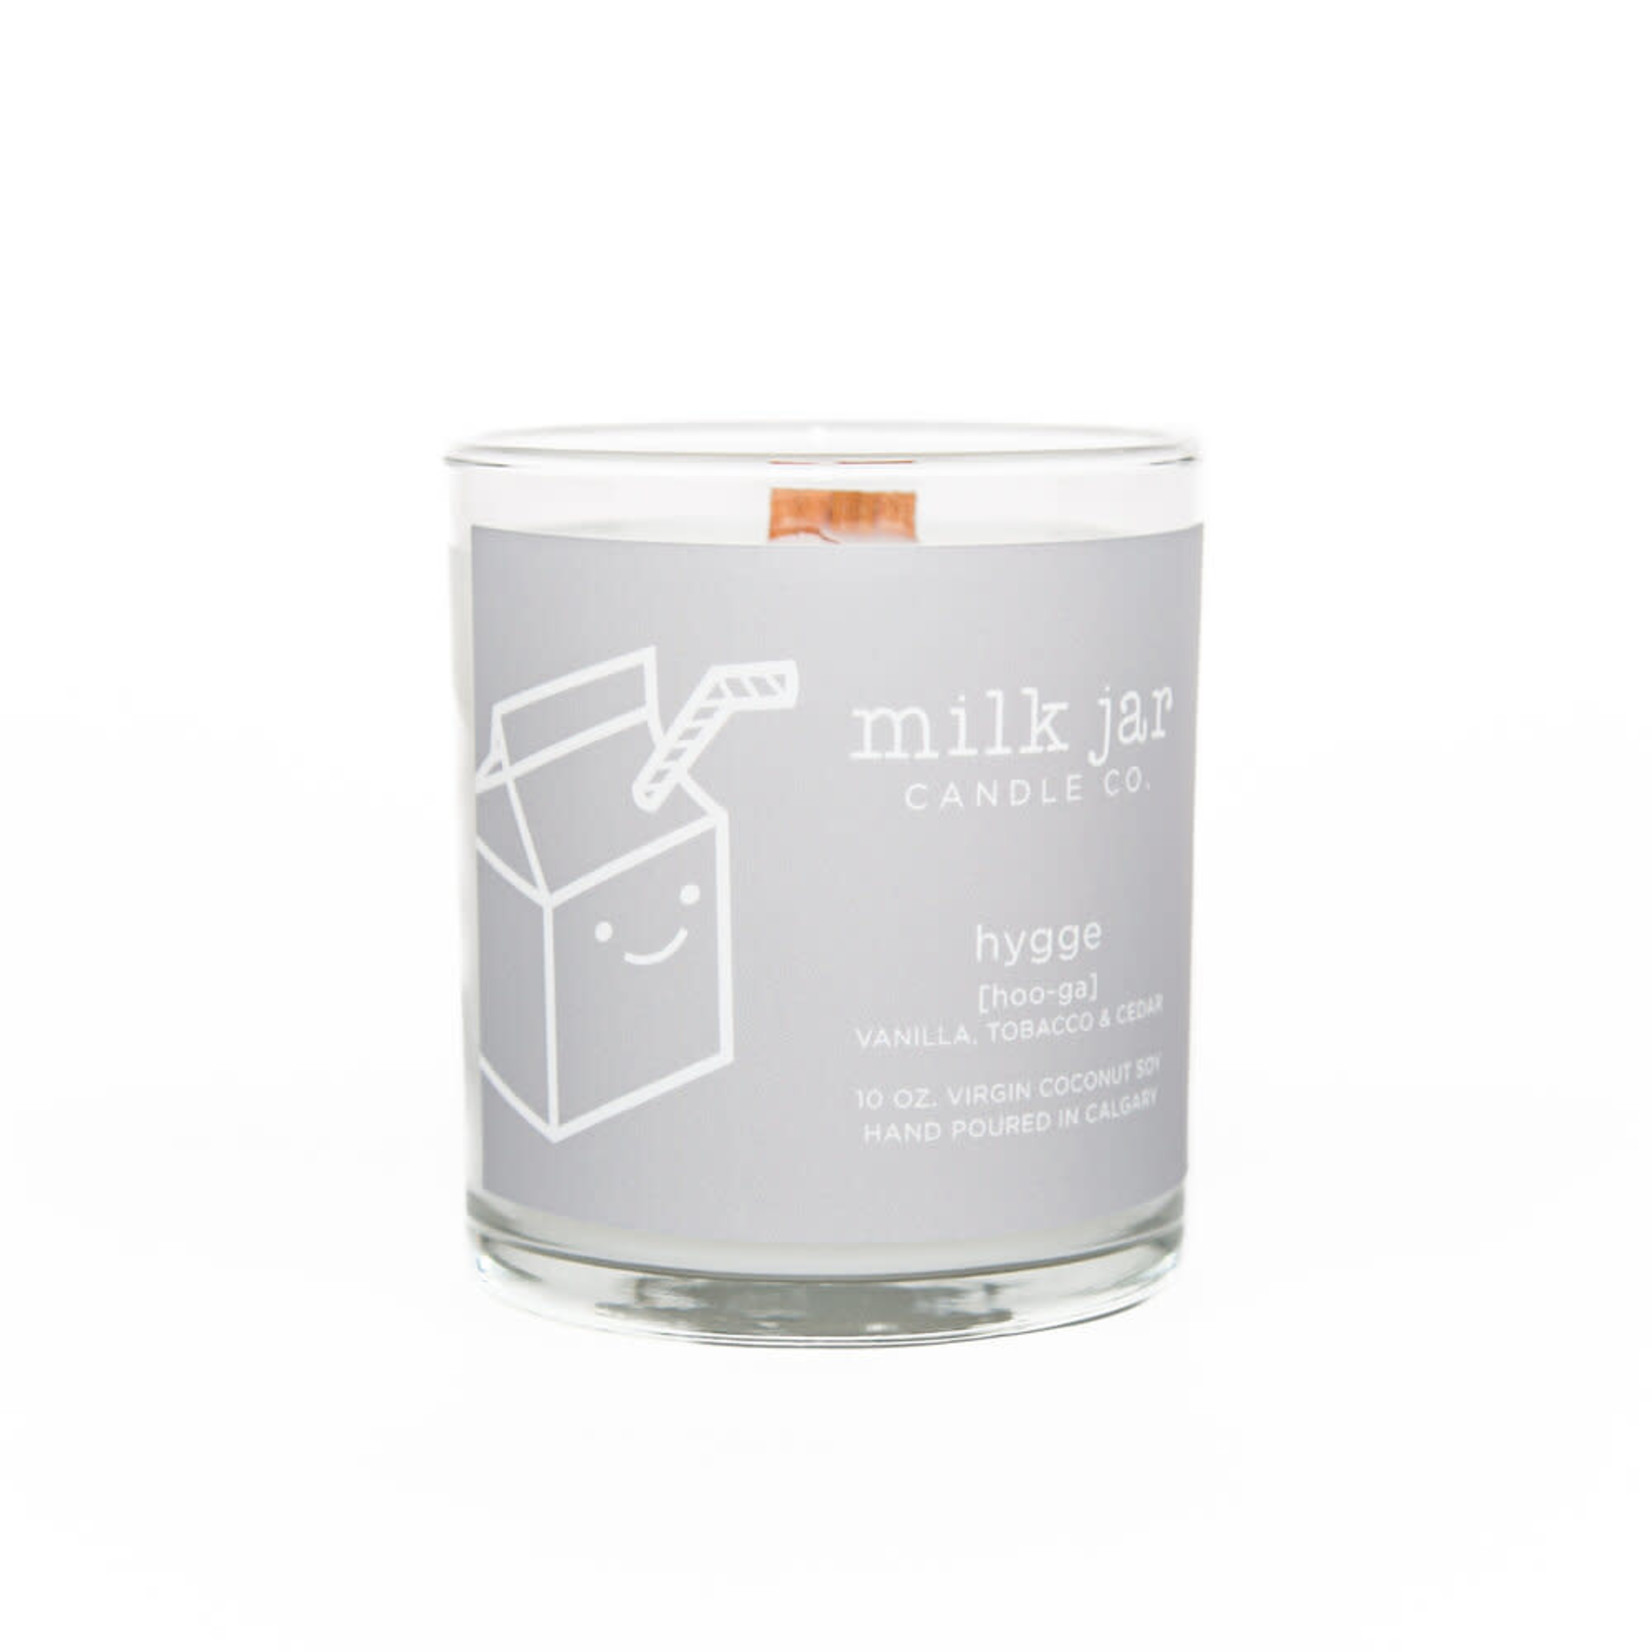 Milk Jar Candle Co. Hygge Candle